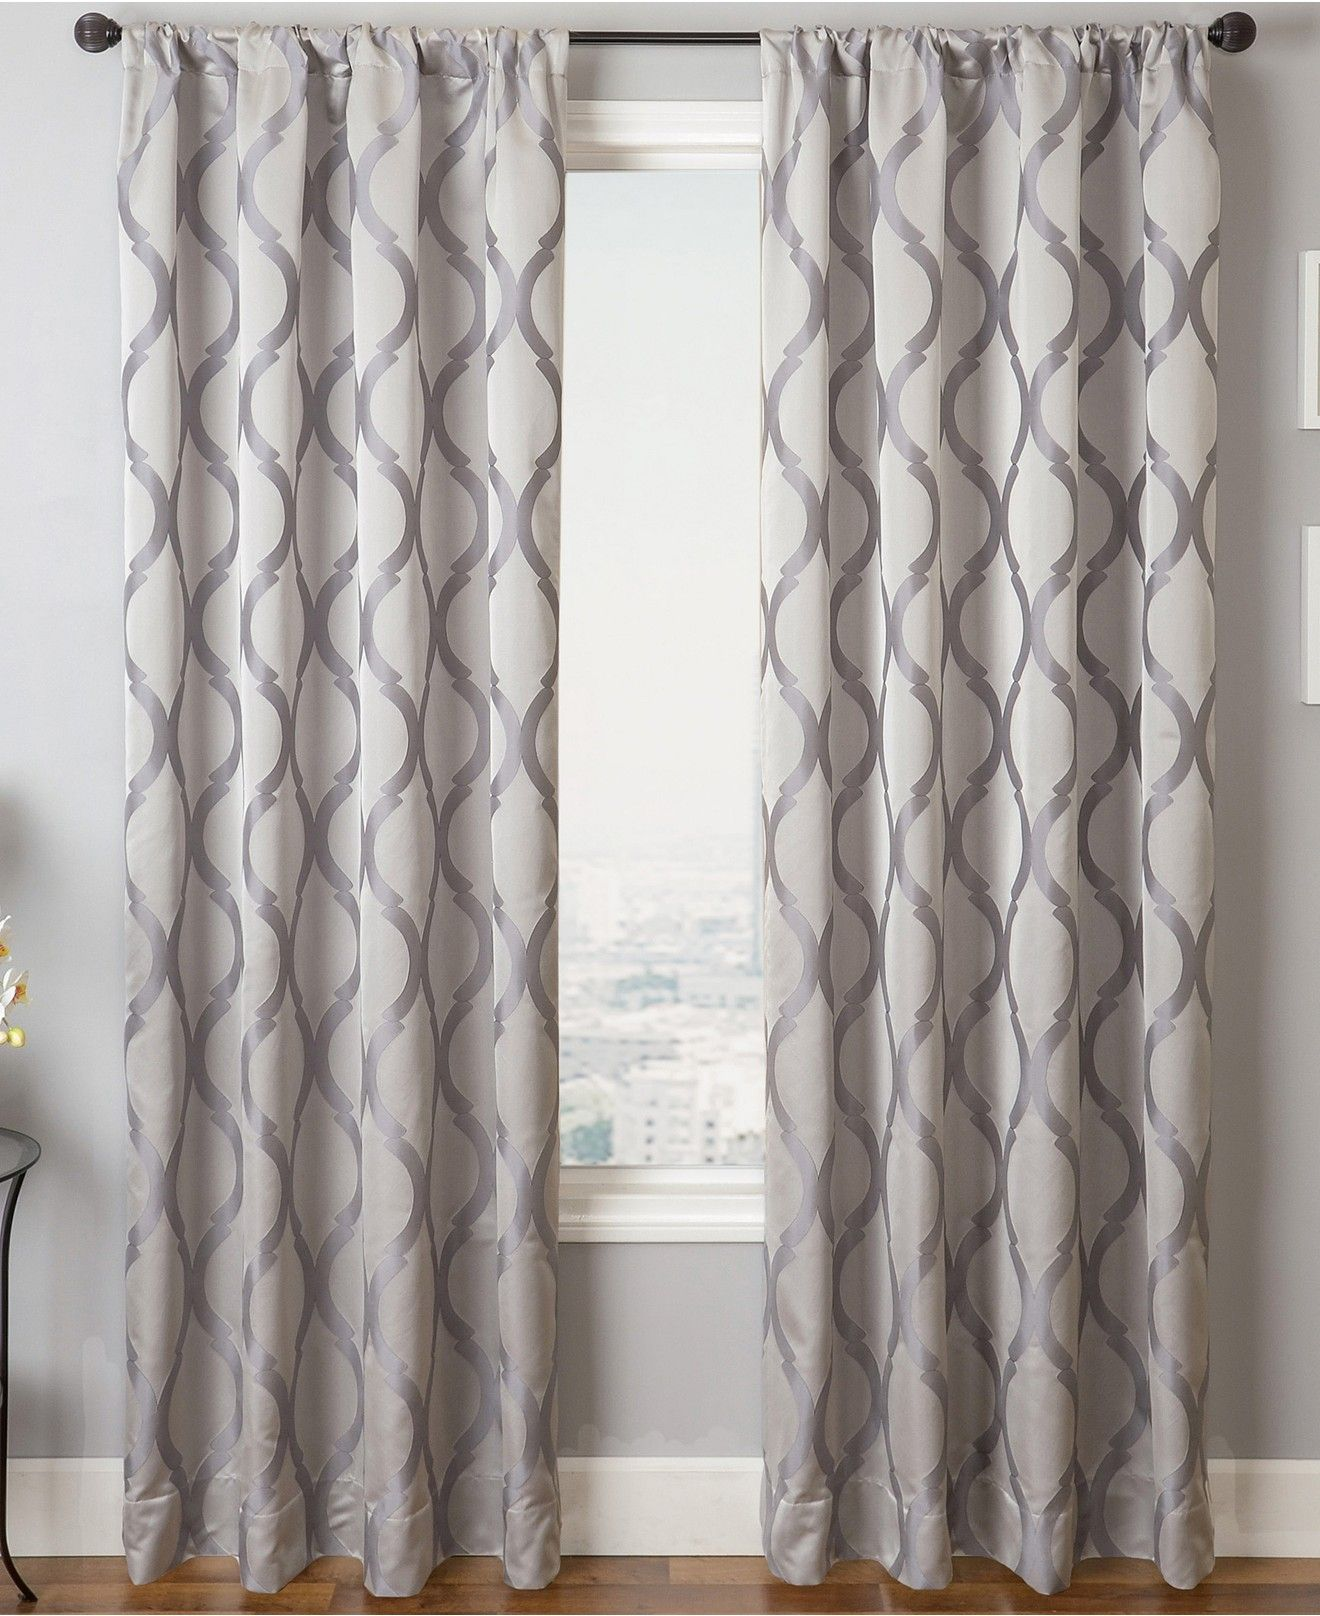 Bed bath and beyond window shades  rick ruiz ricfutures on pinterest